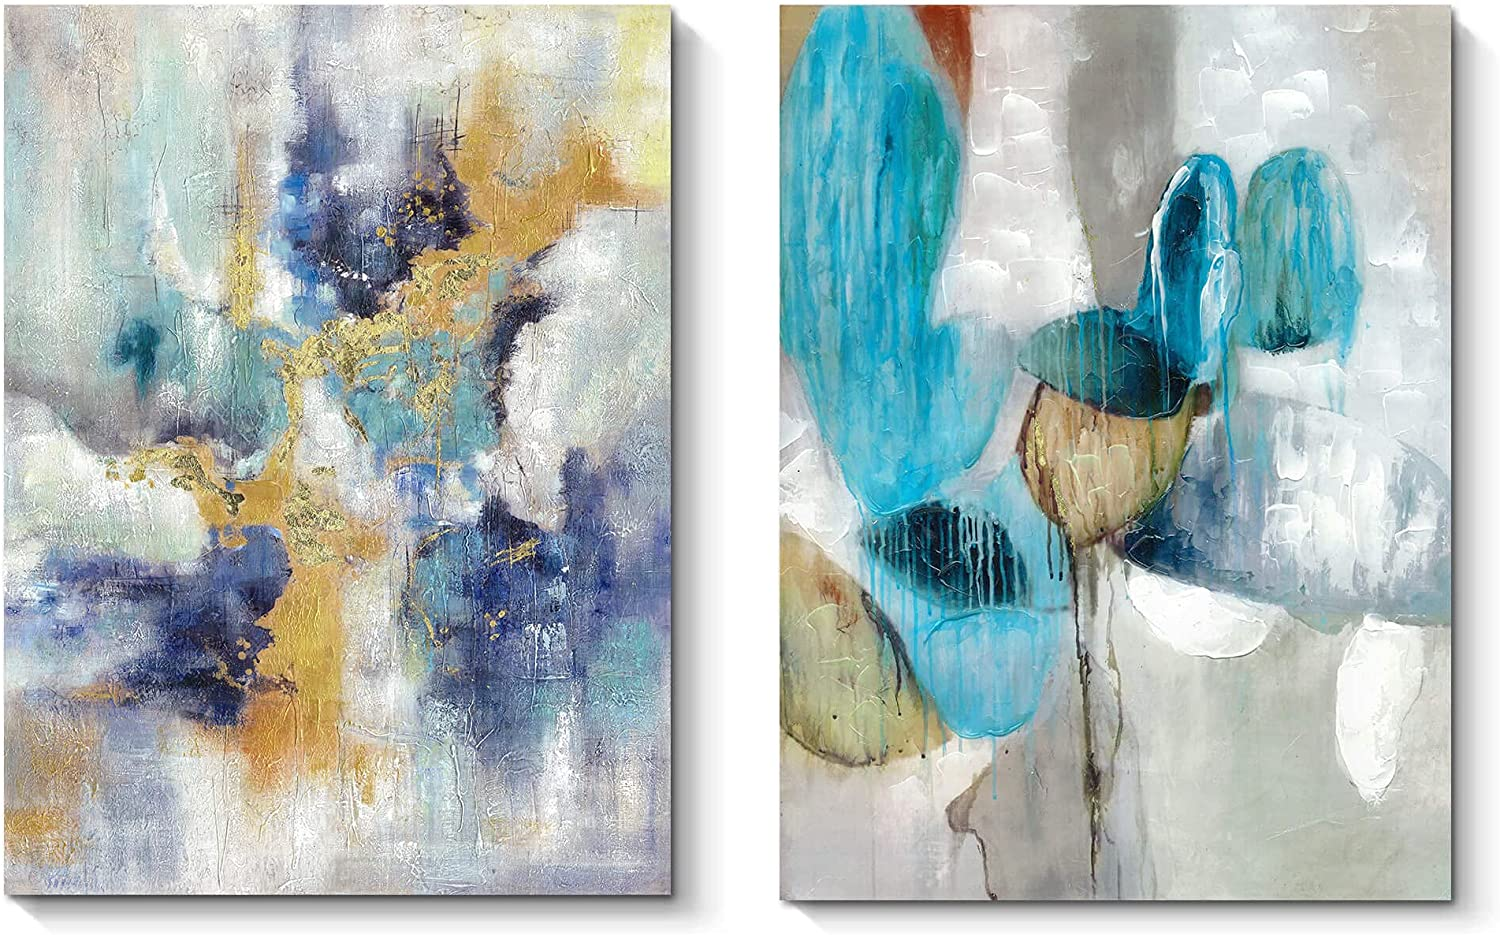 Direct stock discount TAR STUDIO Contemporary Abstract Canvas Reservation Art: Minimalism Wall